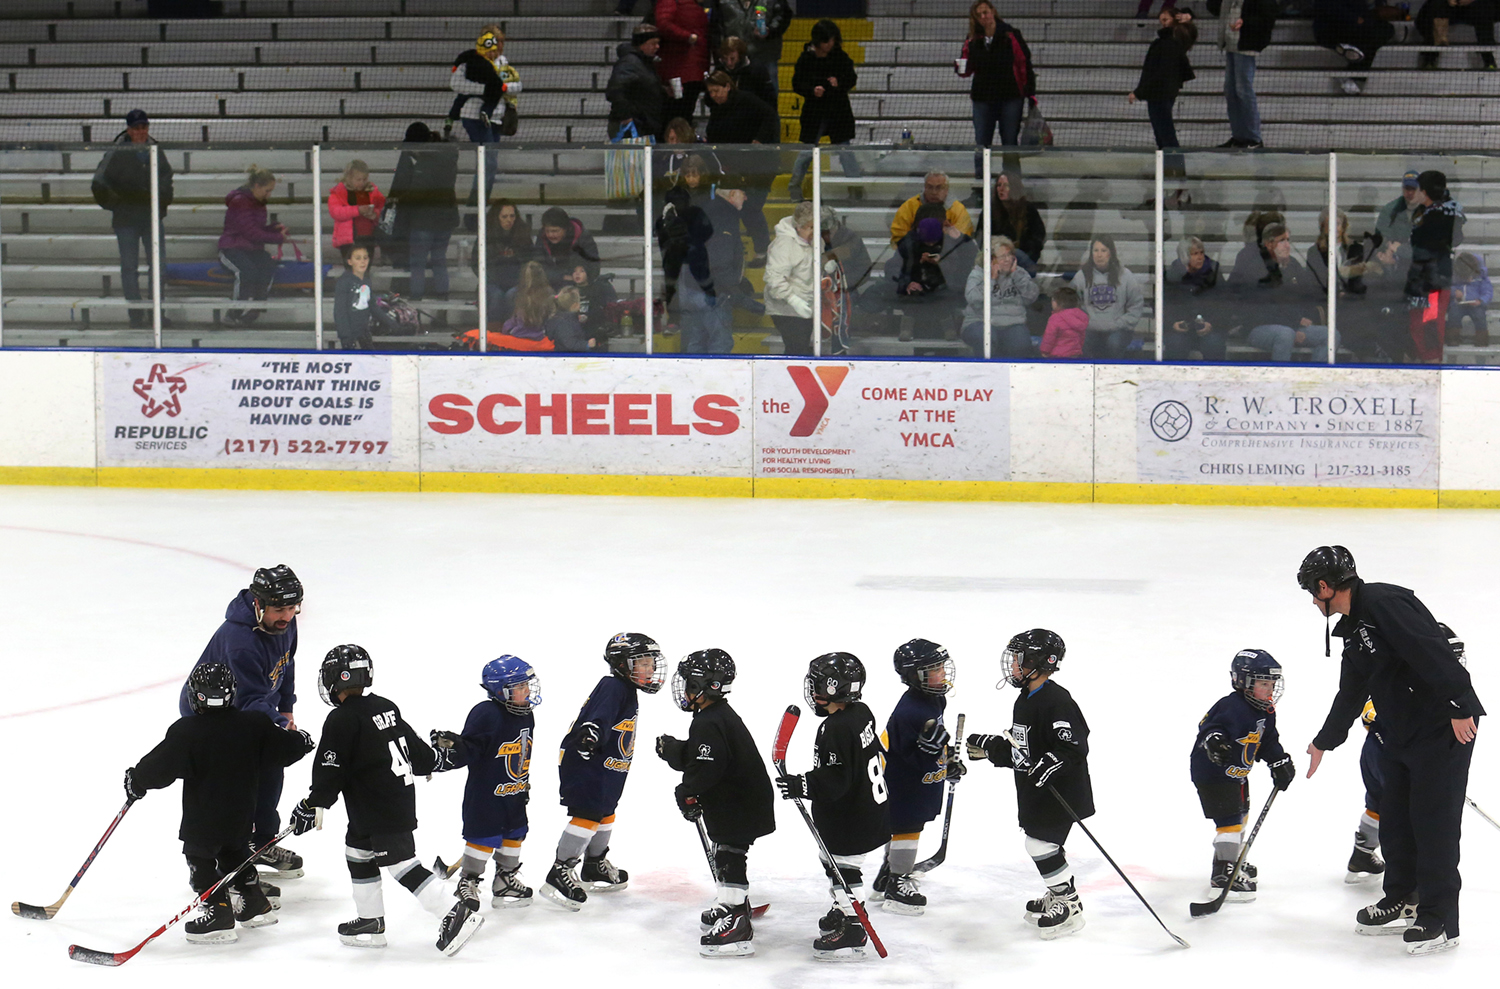 Sportsmanship is always emphasized at the youth hockey level. Members of a Springfield Kings Mini-Mite team shake hands with players from aTwin Bridges Lighting team based in Granite City, Ill on Saturday. With interest locally for the Springfield Jr. Blues hockey team and on the national stage, the success of the Stanley Cup winning Chicago Blackhawks,  area youth hockey programs are booming. That interest was on display at the Nelson Center in Springfield when The Springfield Youth Hockey Association held a Youth Hockey Jamboree featuring 18 Central Illinois teams competing in games in the Mite (eight and under) and Mini-Mite (six and under) divisions. David Spencer/The State Journal-Register